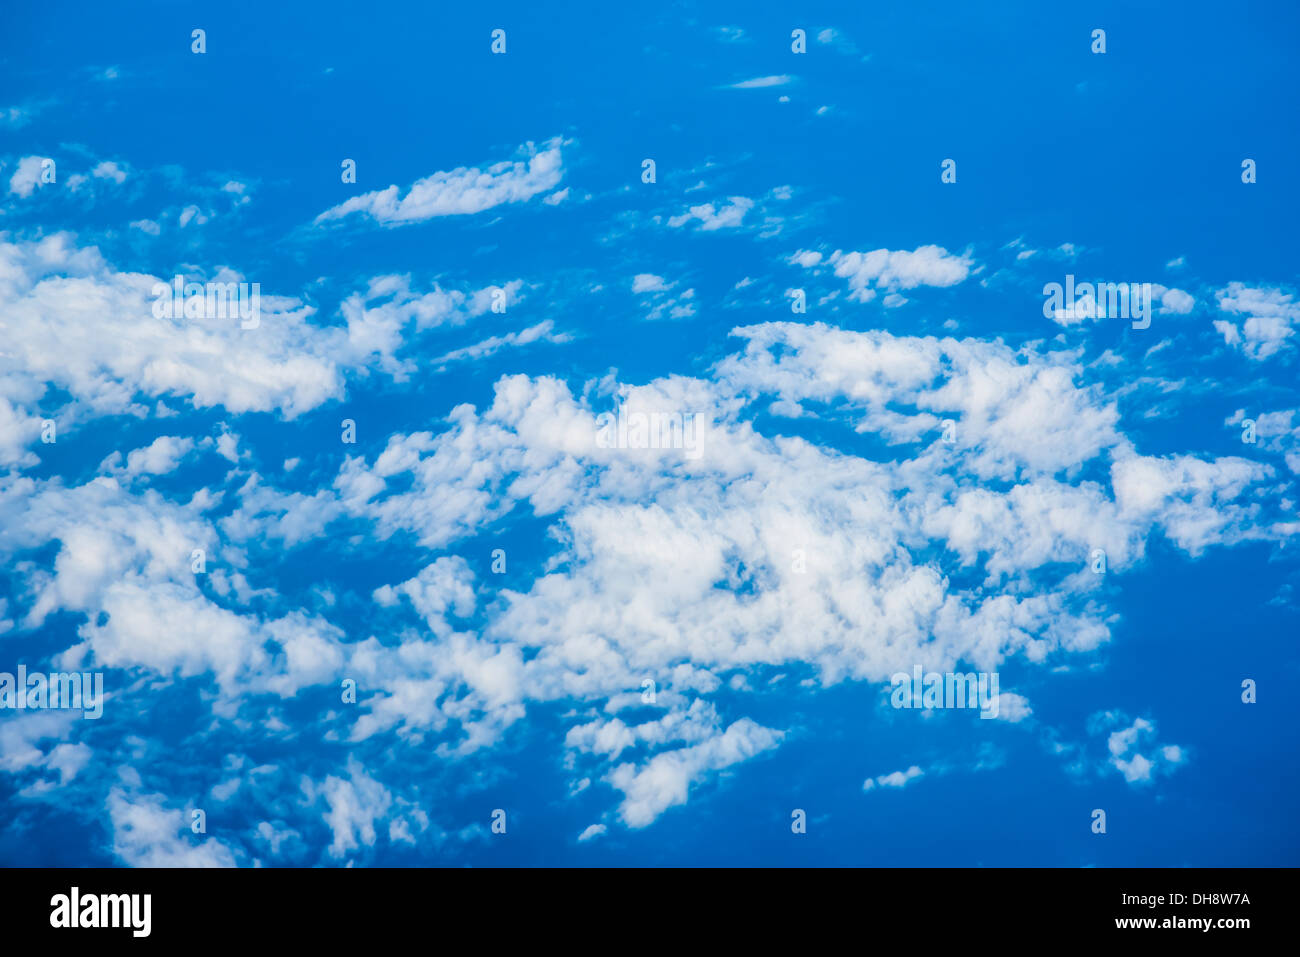 Blue sky and clouds XXL - Stock Image